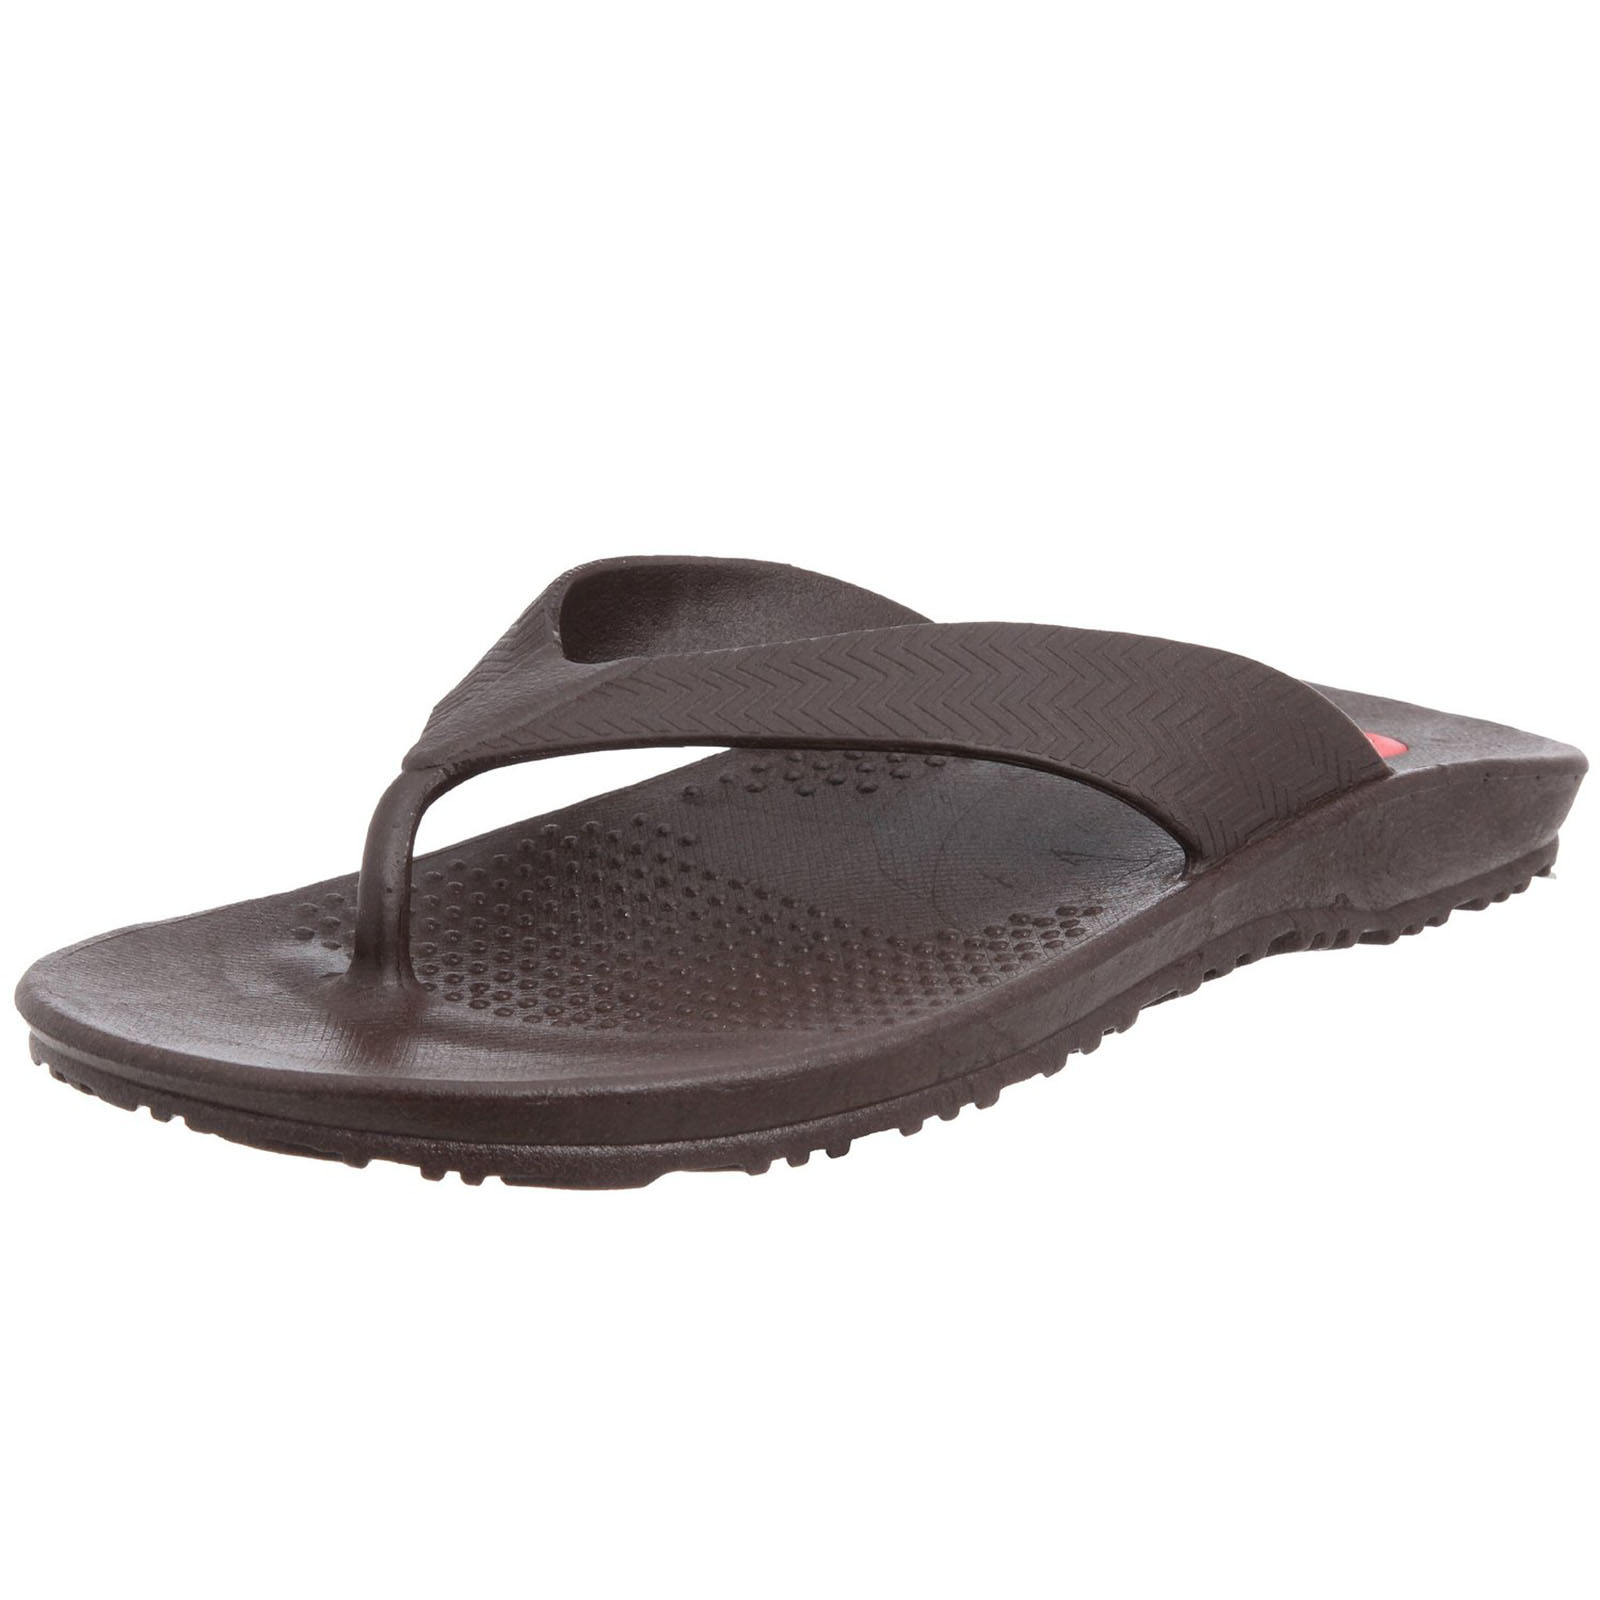 Find great deals on eBay for men waterproof sandals. Shop with confidence.